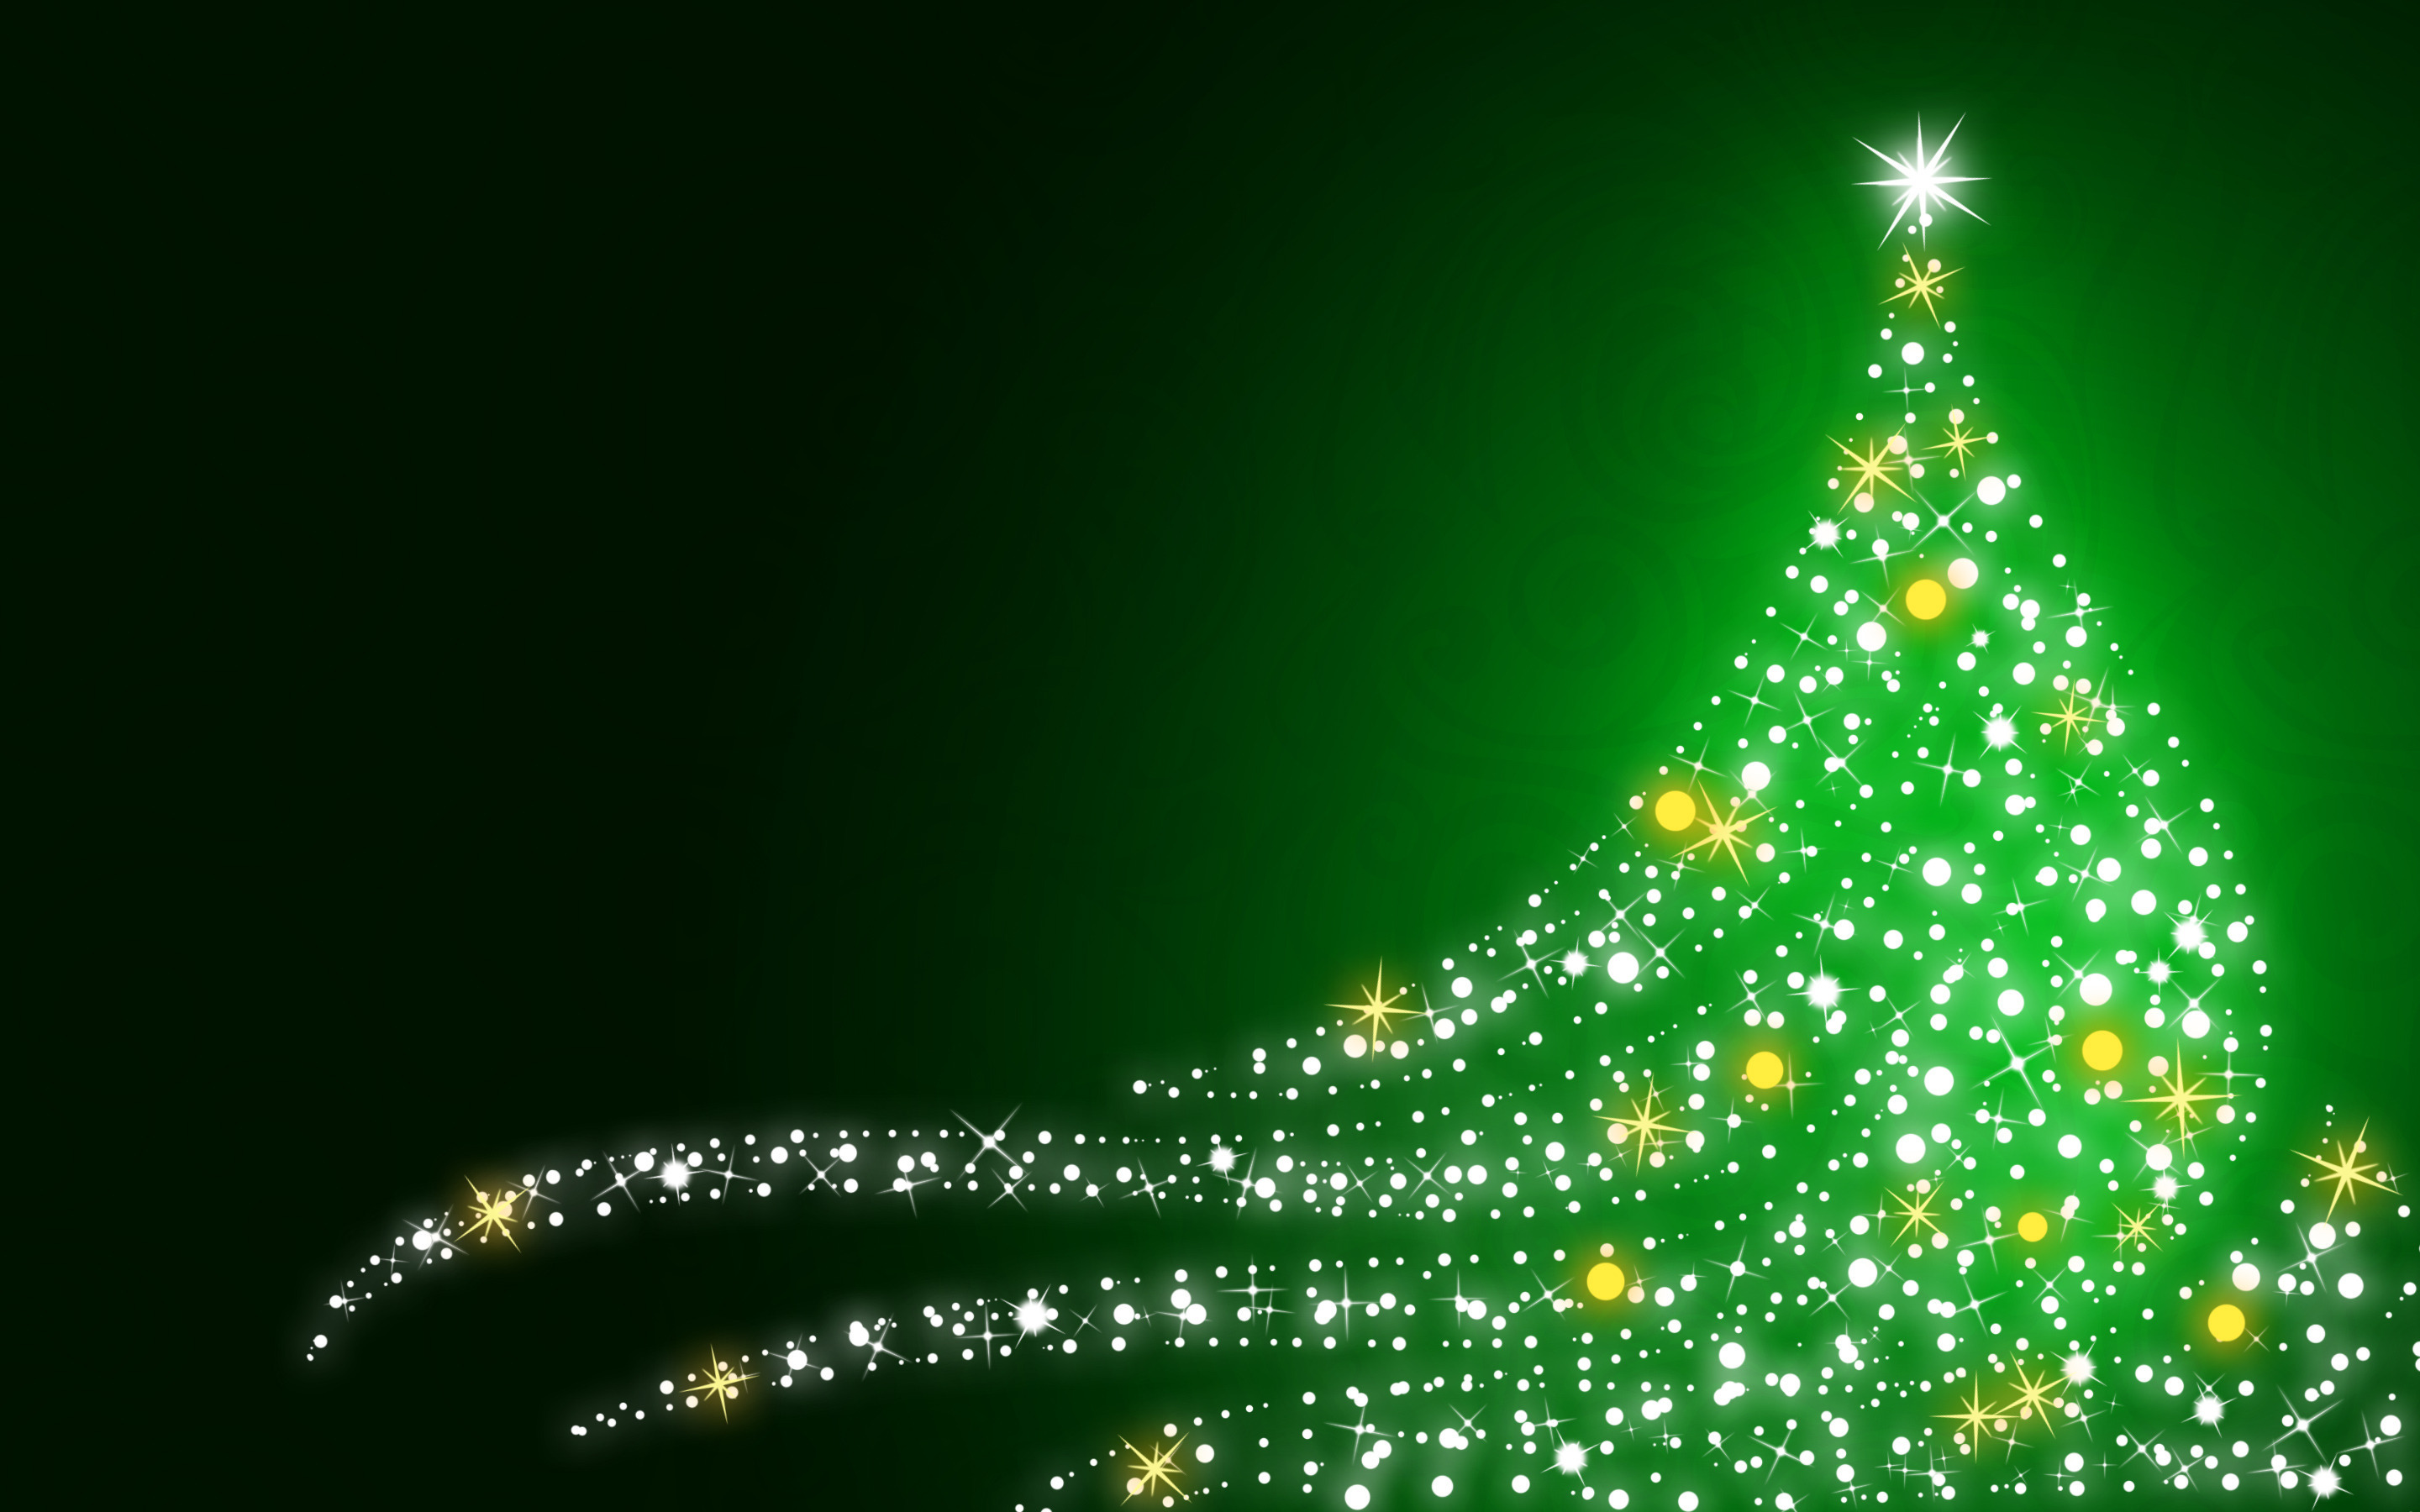 Shimmering Christmas tree on Christmas green background wallpapers 2880x1800